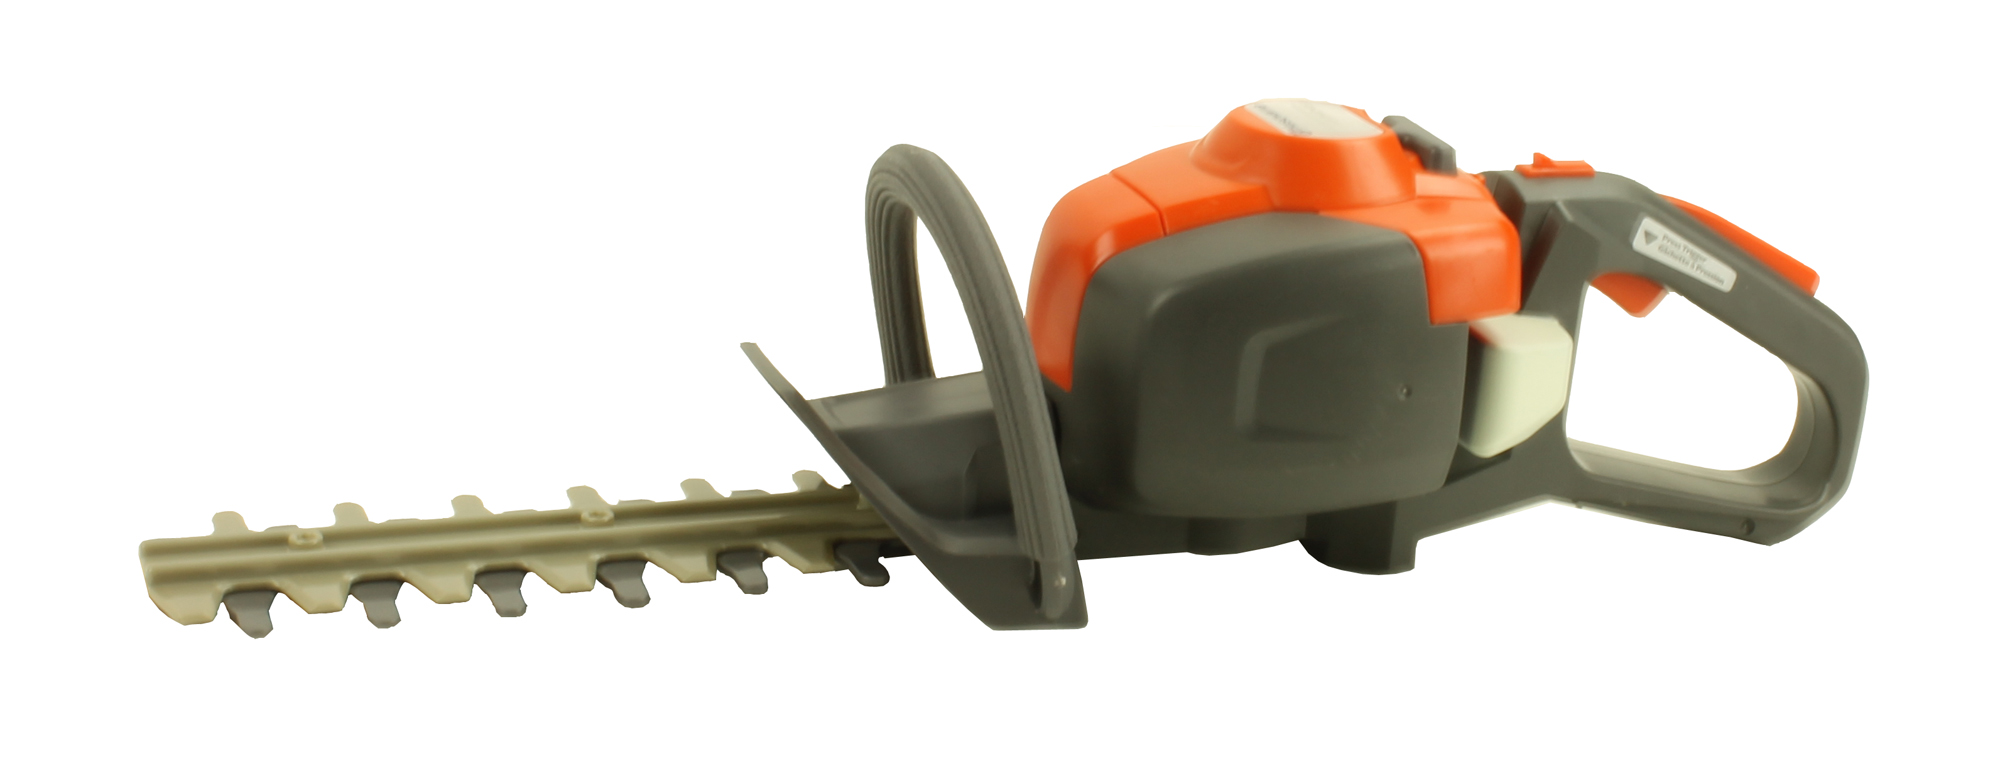 Husqvarna 585729103 122HD45 Toy Kids Battery Operated Hedge Trimmer